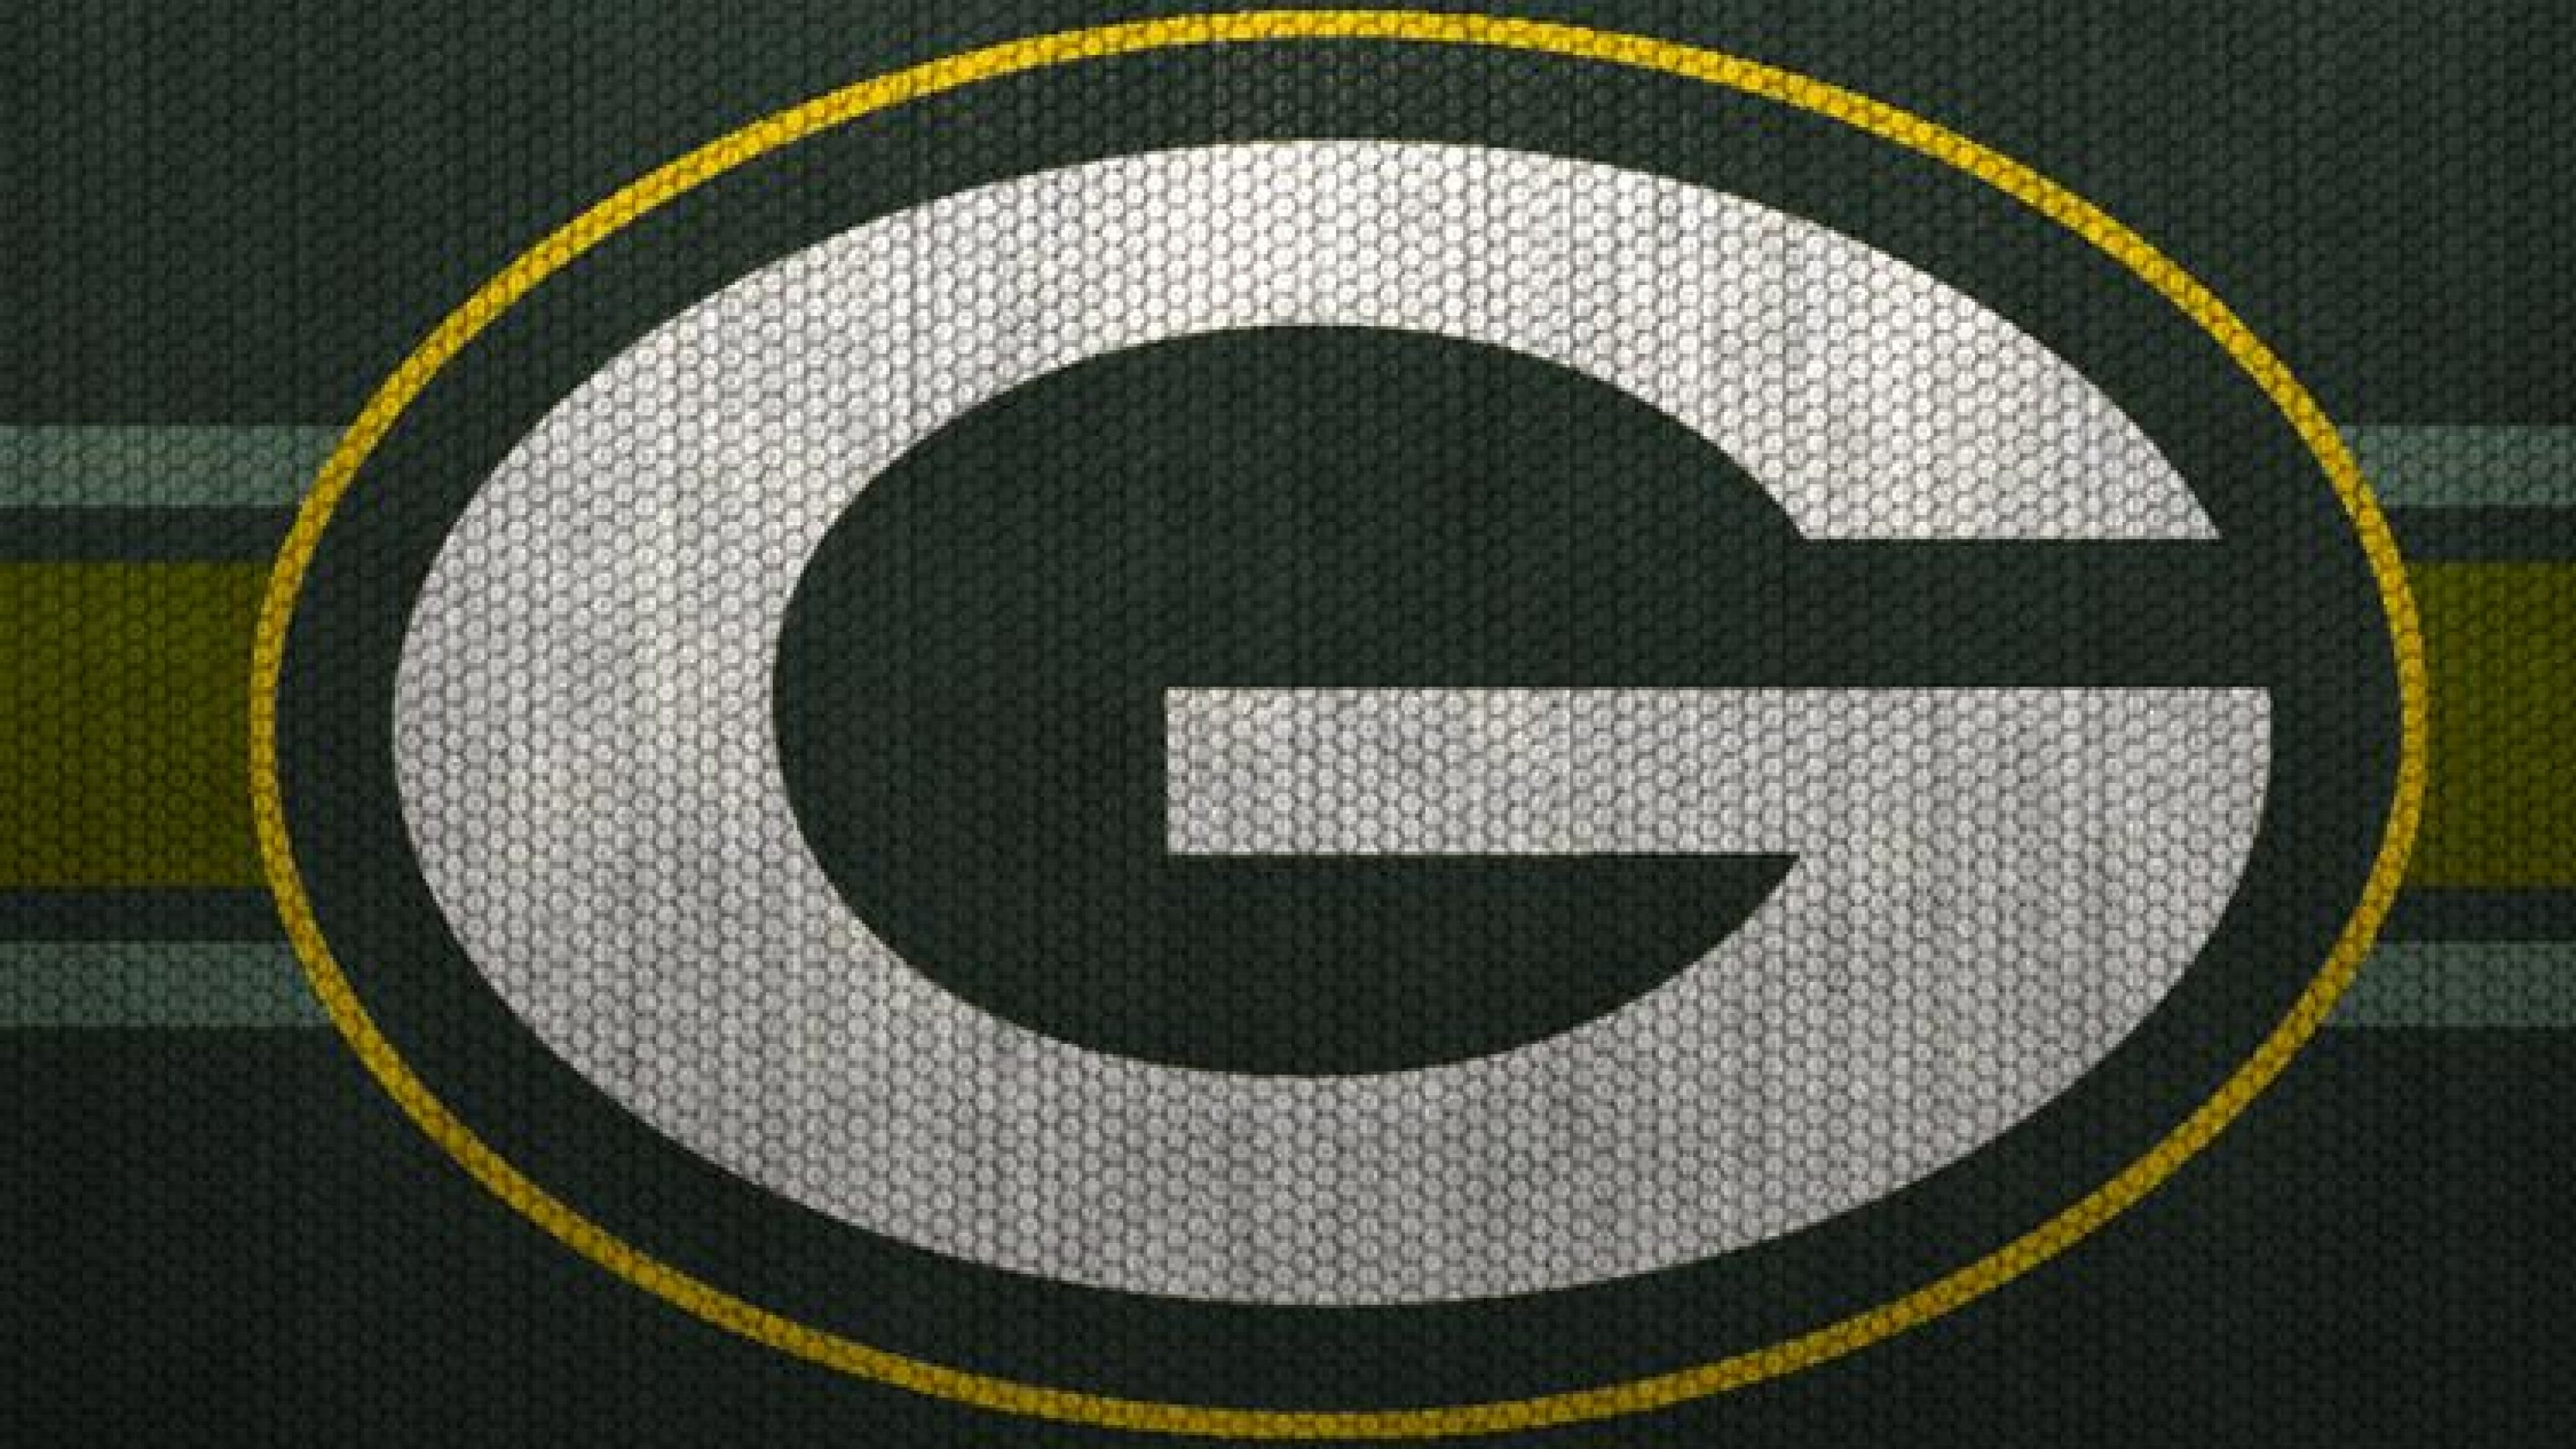 Green Bay Packers Iphone X Wallpaper Green Bay Packers Schedule Wallpaper 69 Images